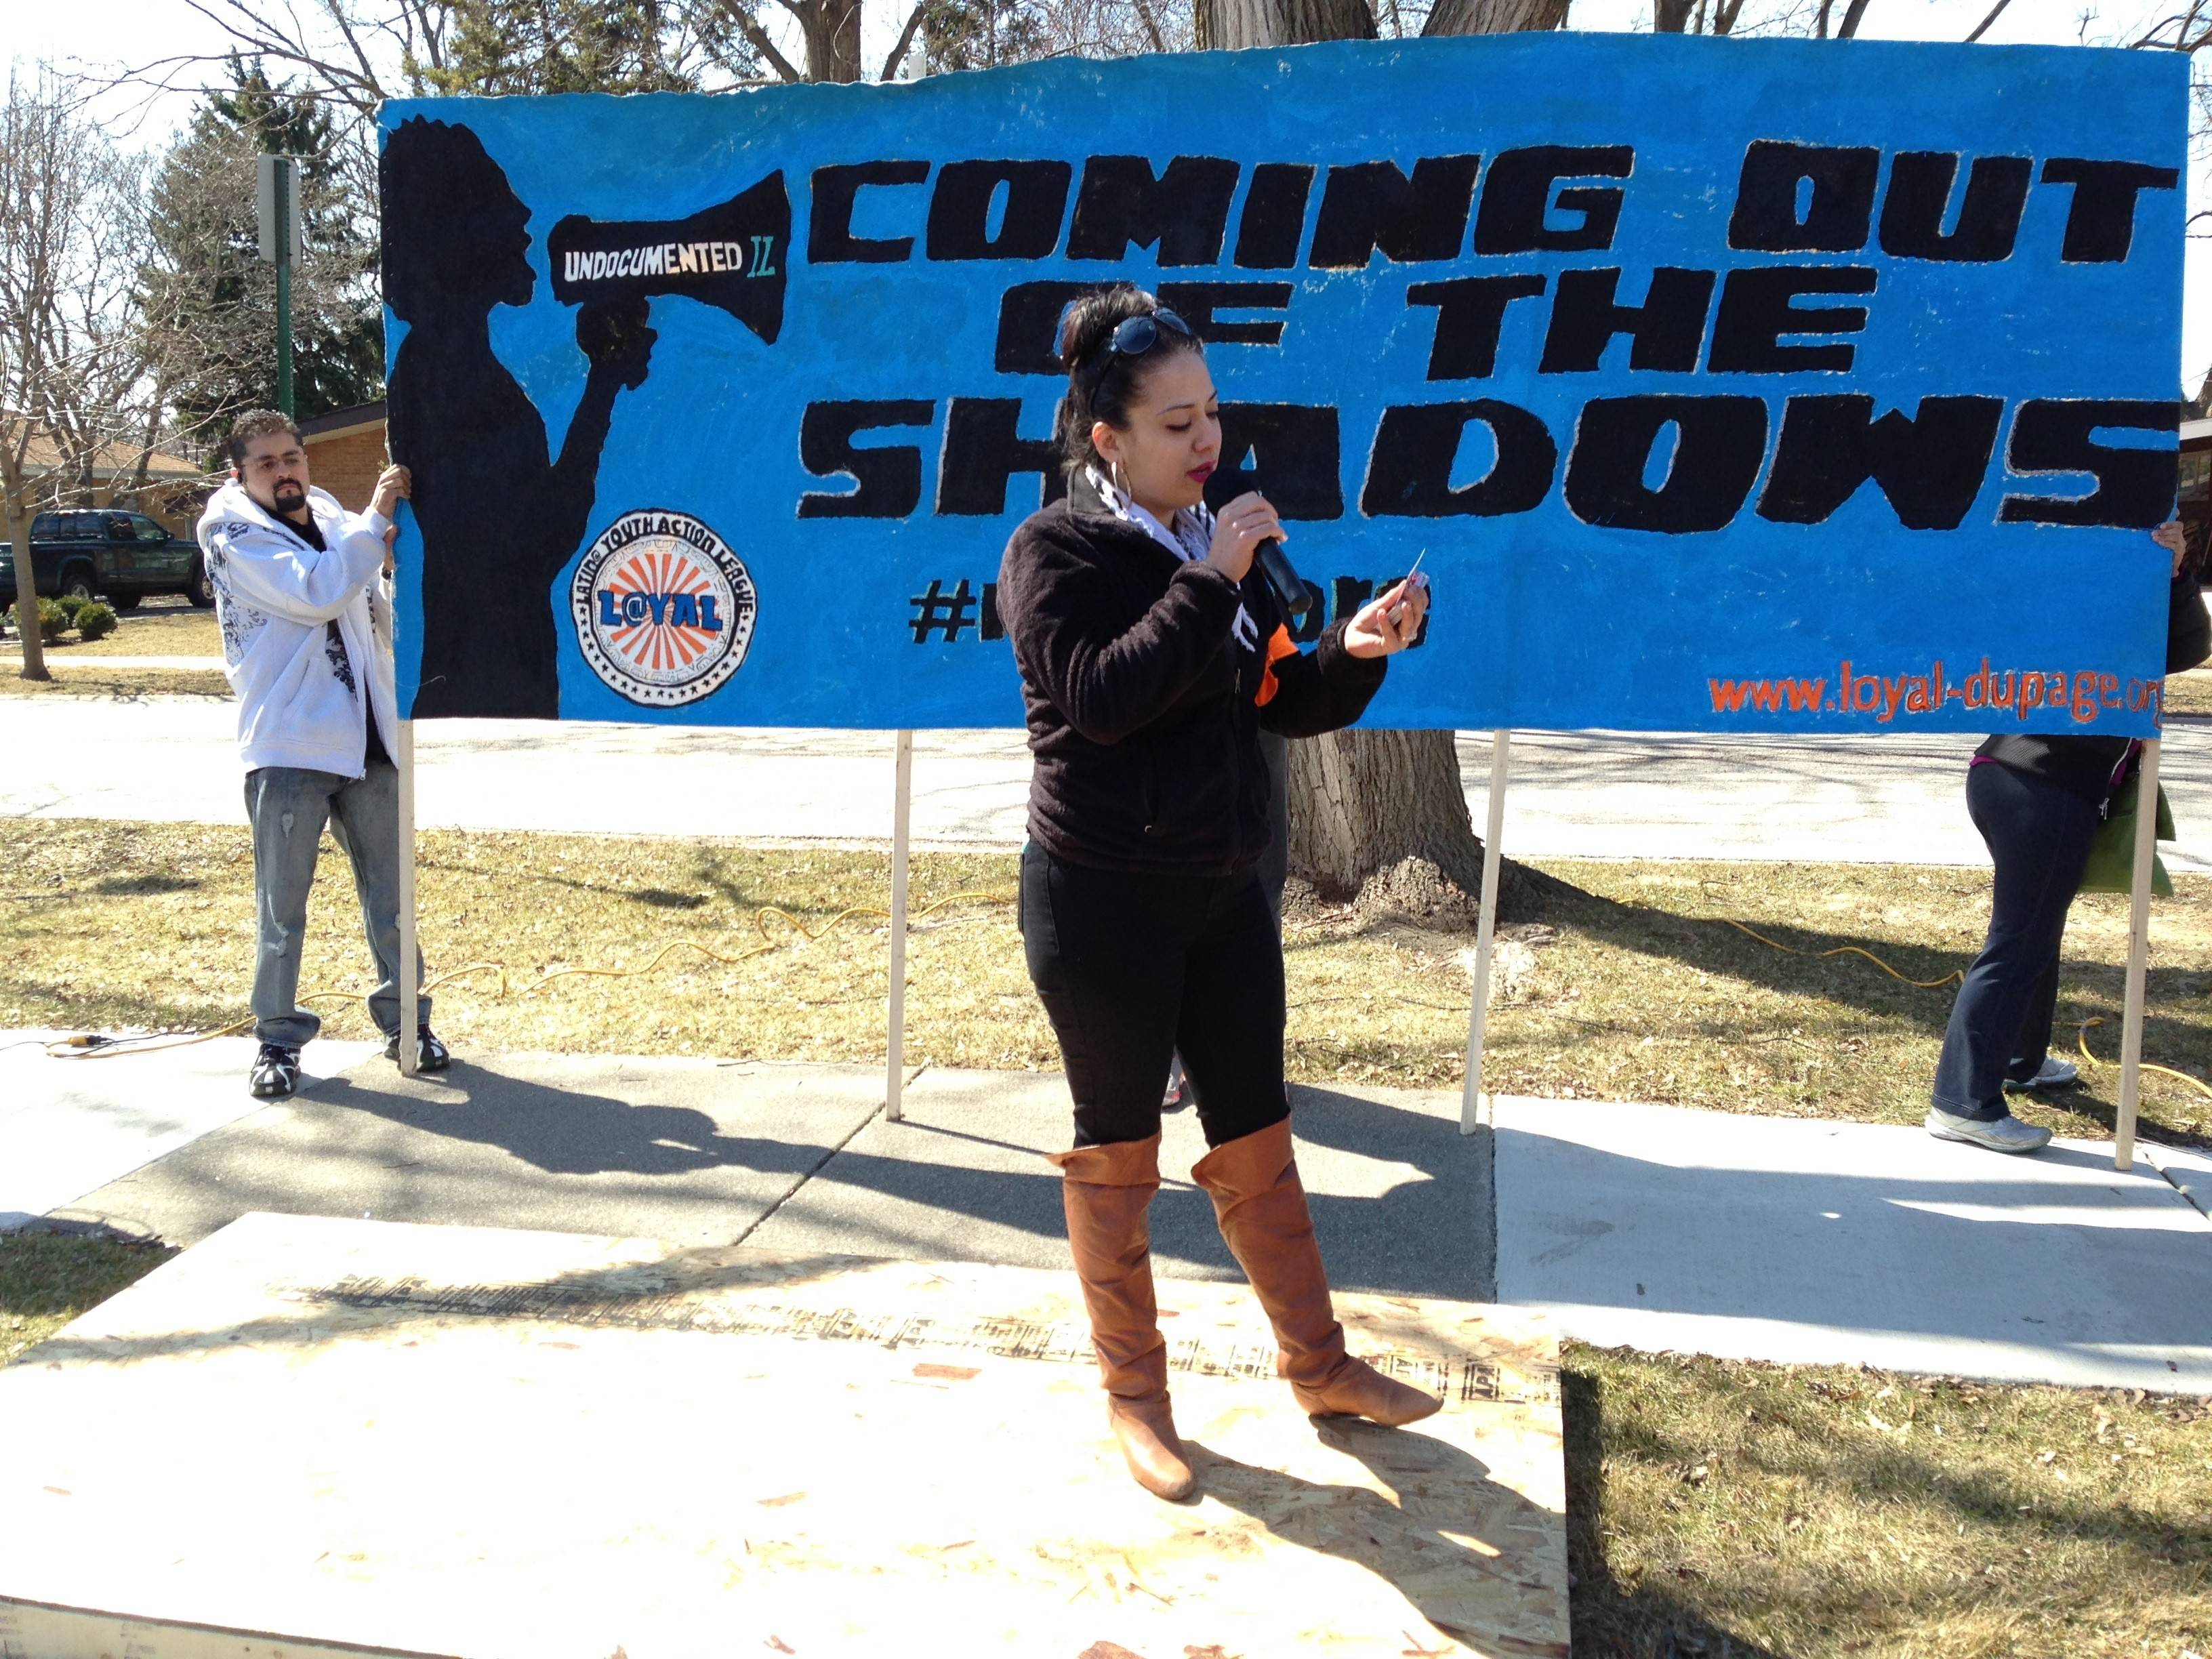 Addison resident Cynthia Brito talks to the crowd Sunday during the Coming Out of the Shadows rally in Bensenville, which called for an end to deportations of undocumented residents.